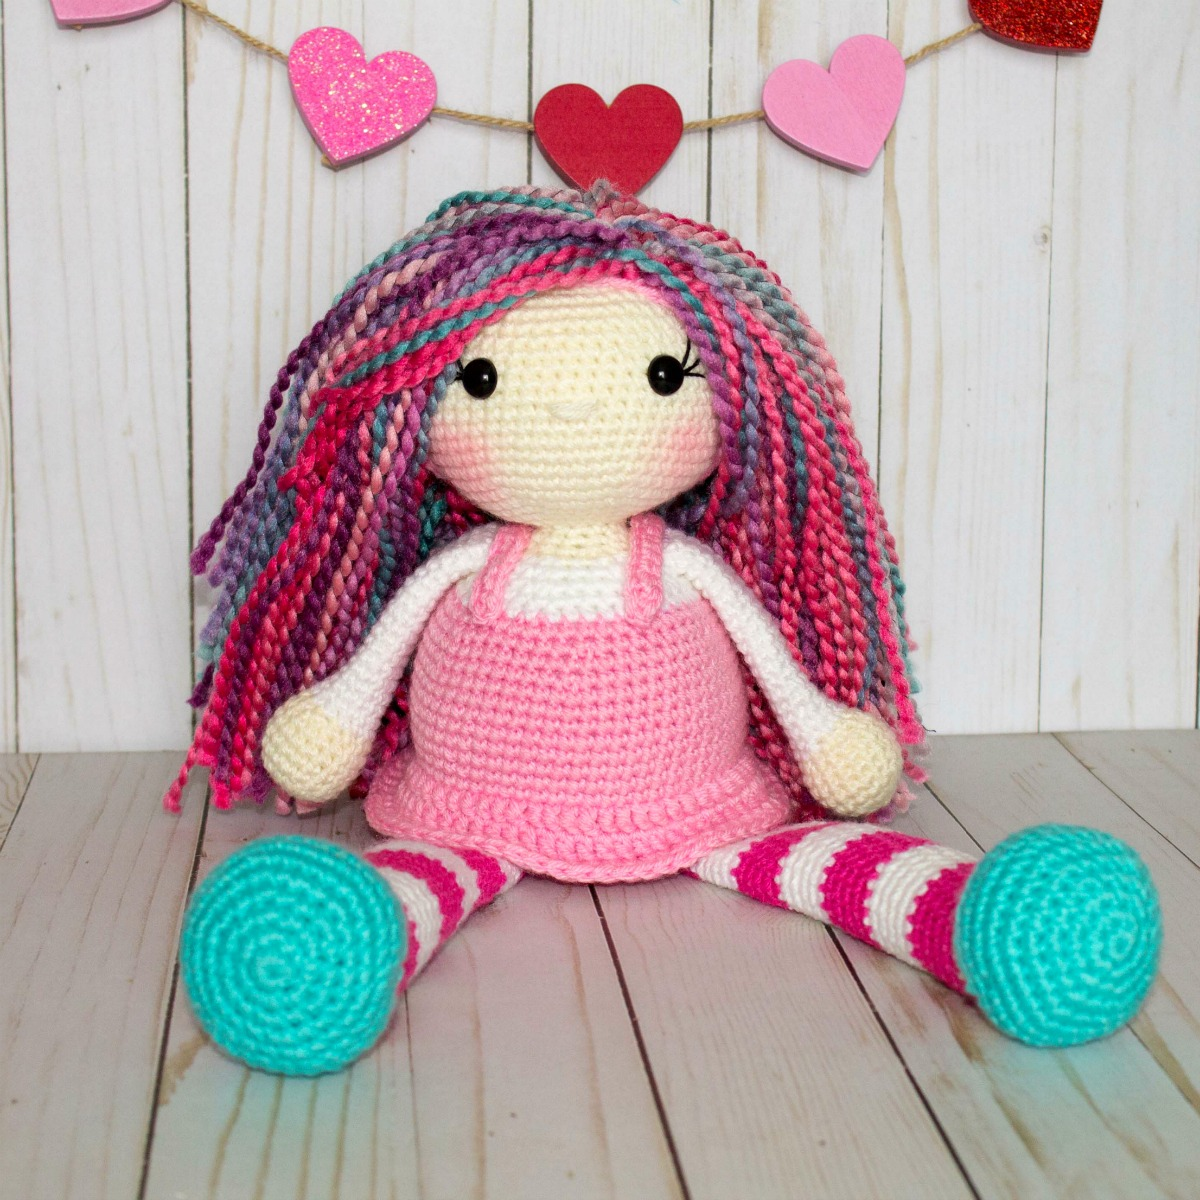 It's just a picture of Crafty Printable Crochet Patterns